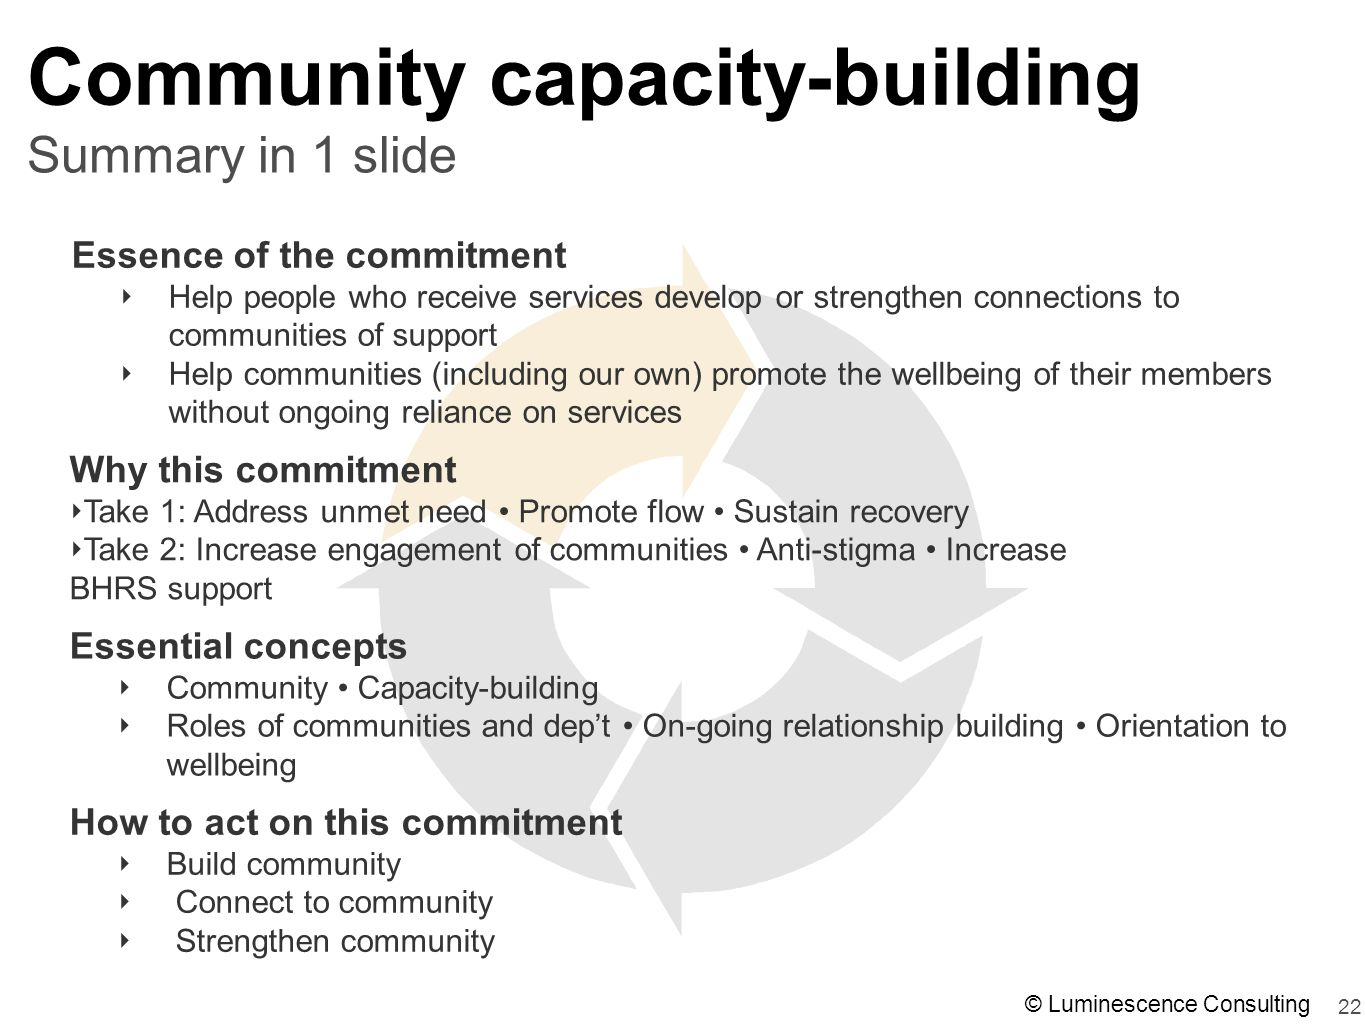 22 Summary in 1 slide Community capacity-building Essential concepts ‣ Community Capacity-building ‣ Roles of communities and dep't On-going relationship building Orientation to wellbeing Essence of the commitment ‣ Help people who receive services develop or strengthen connections to communities of support ‣ Help communities (including our own) promote the wellbeing of their members without ongoing reliance on services Why this commitment ‣ Take 1: Address unmet need Promote flow Sustain recovery ‣ Take 2: Increase engagement of communities Anti-stigma Increase BHRS support How to act on this commitment ‣ Build community ‣ Connect to community ‣ Strengthen community © Luminescence Consulting